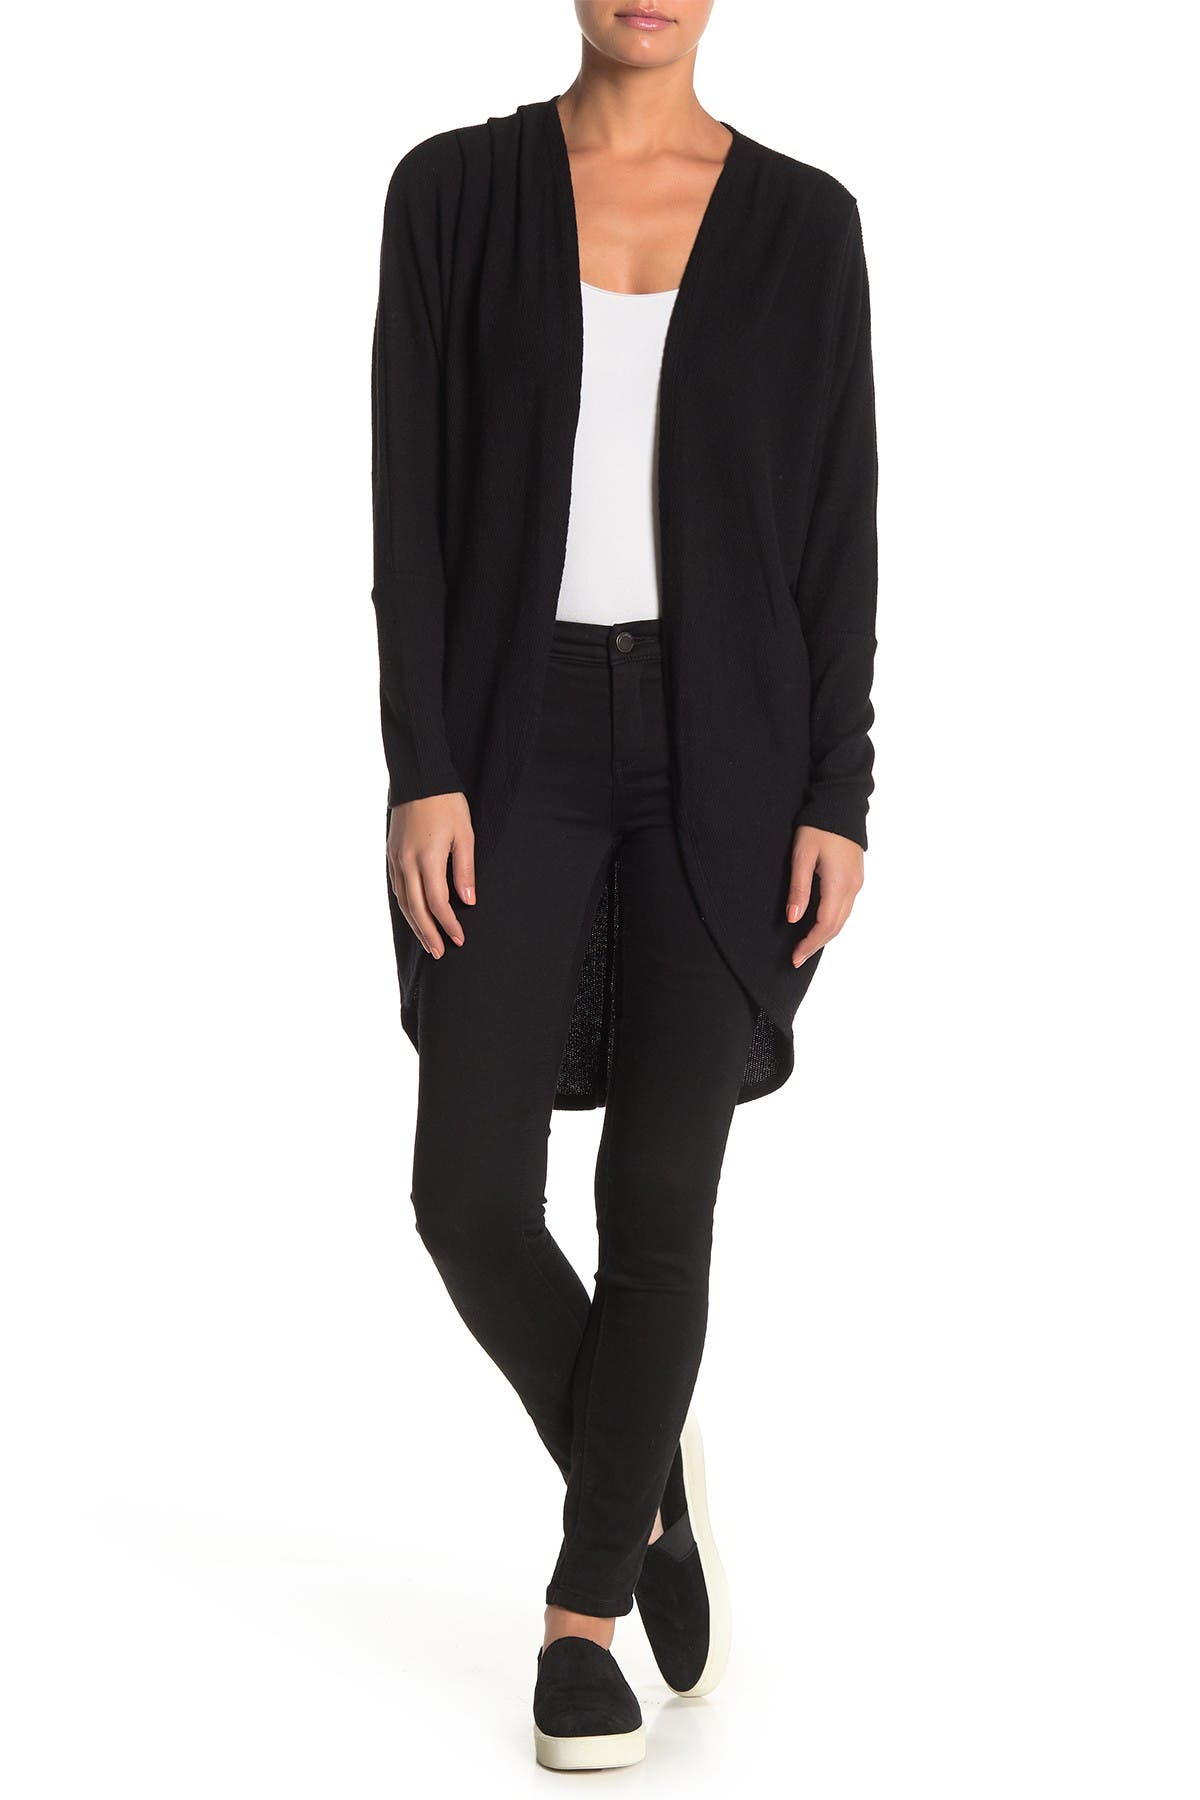 Image of Abound Ribbed Knit Cozy Dolman Cardigan